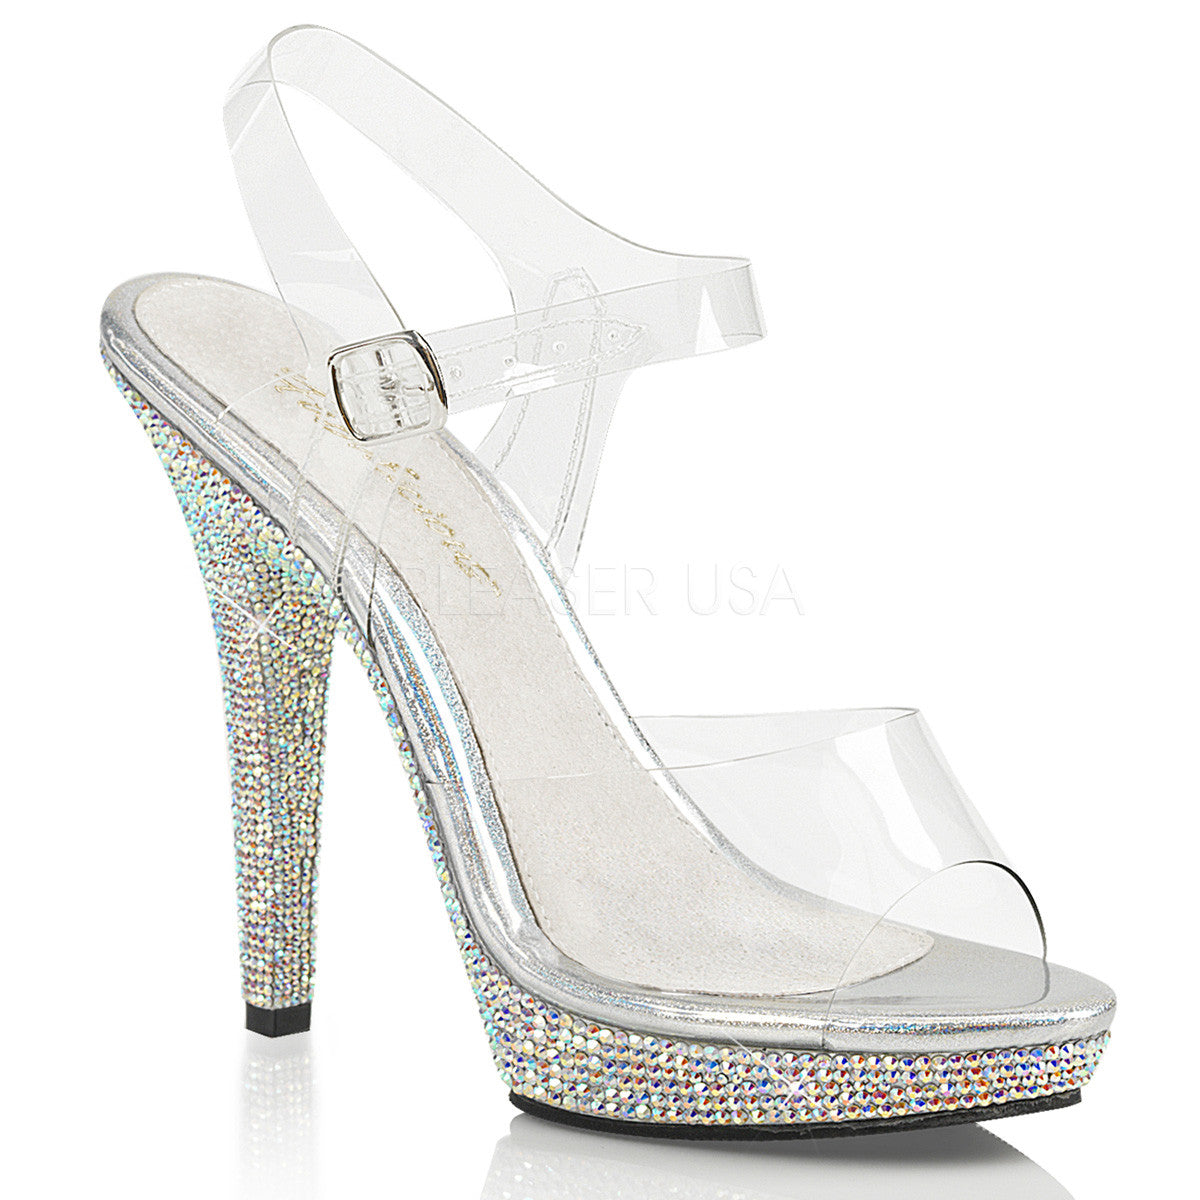 Fabulicious LIP-108DM Silver Ankle Strap Sandals With Rhinestones Bottom - Shoecup.com